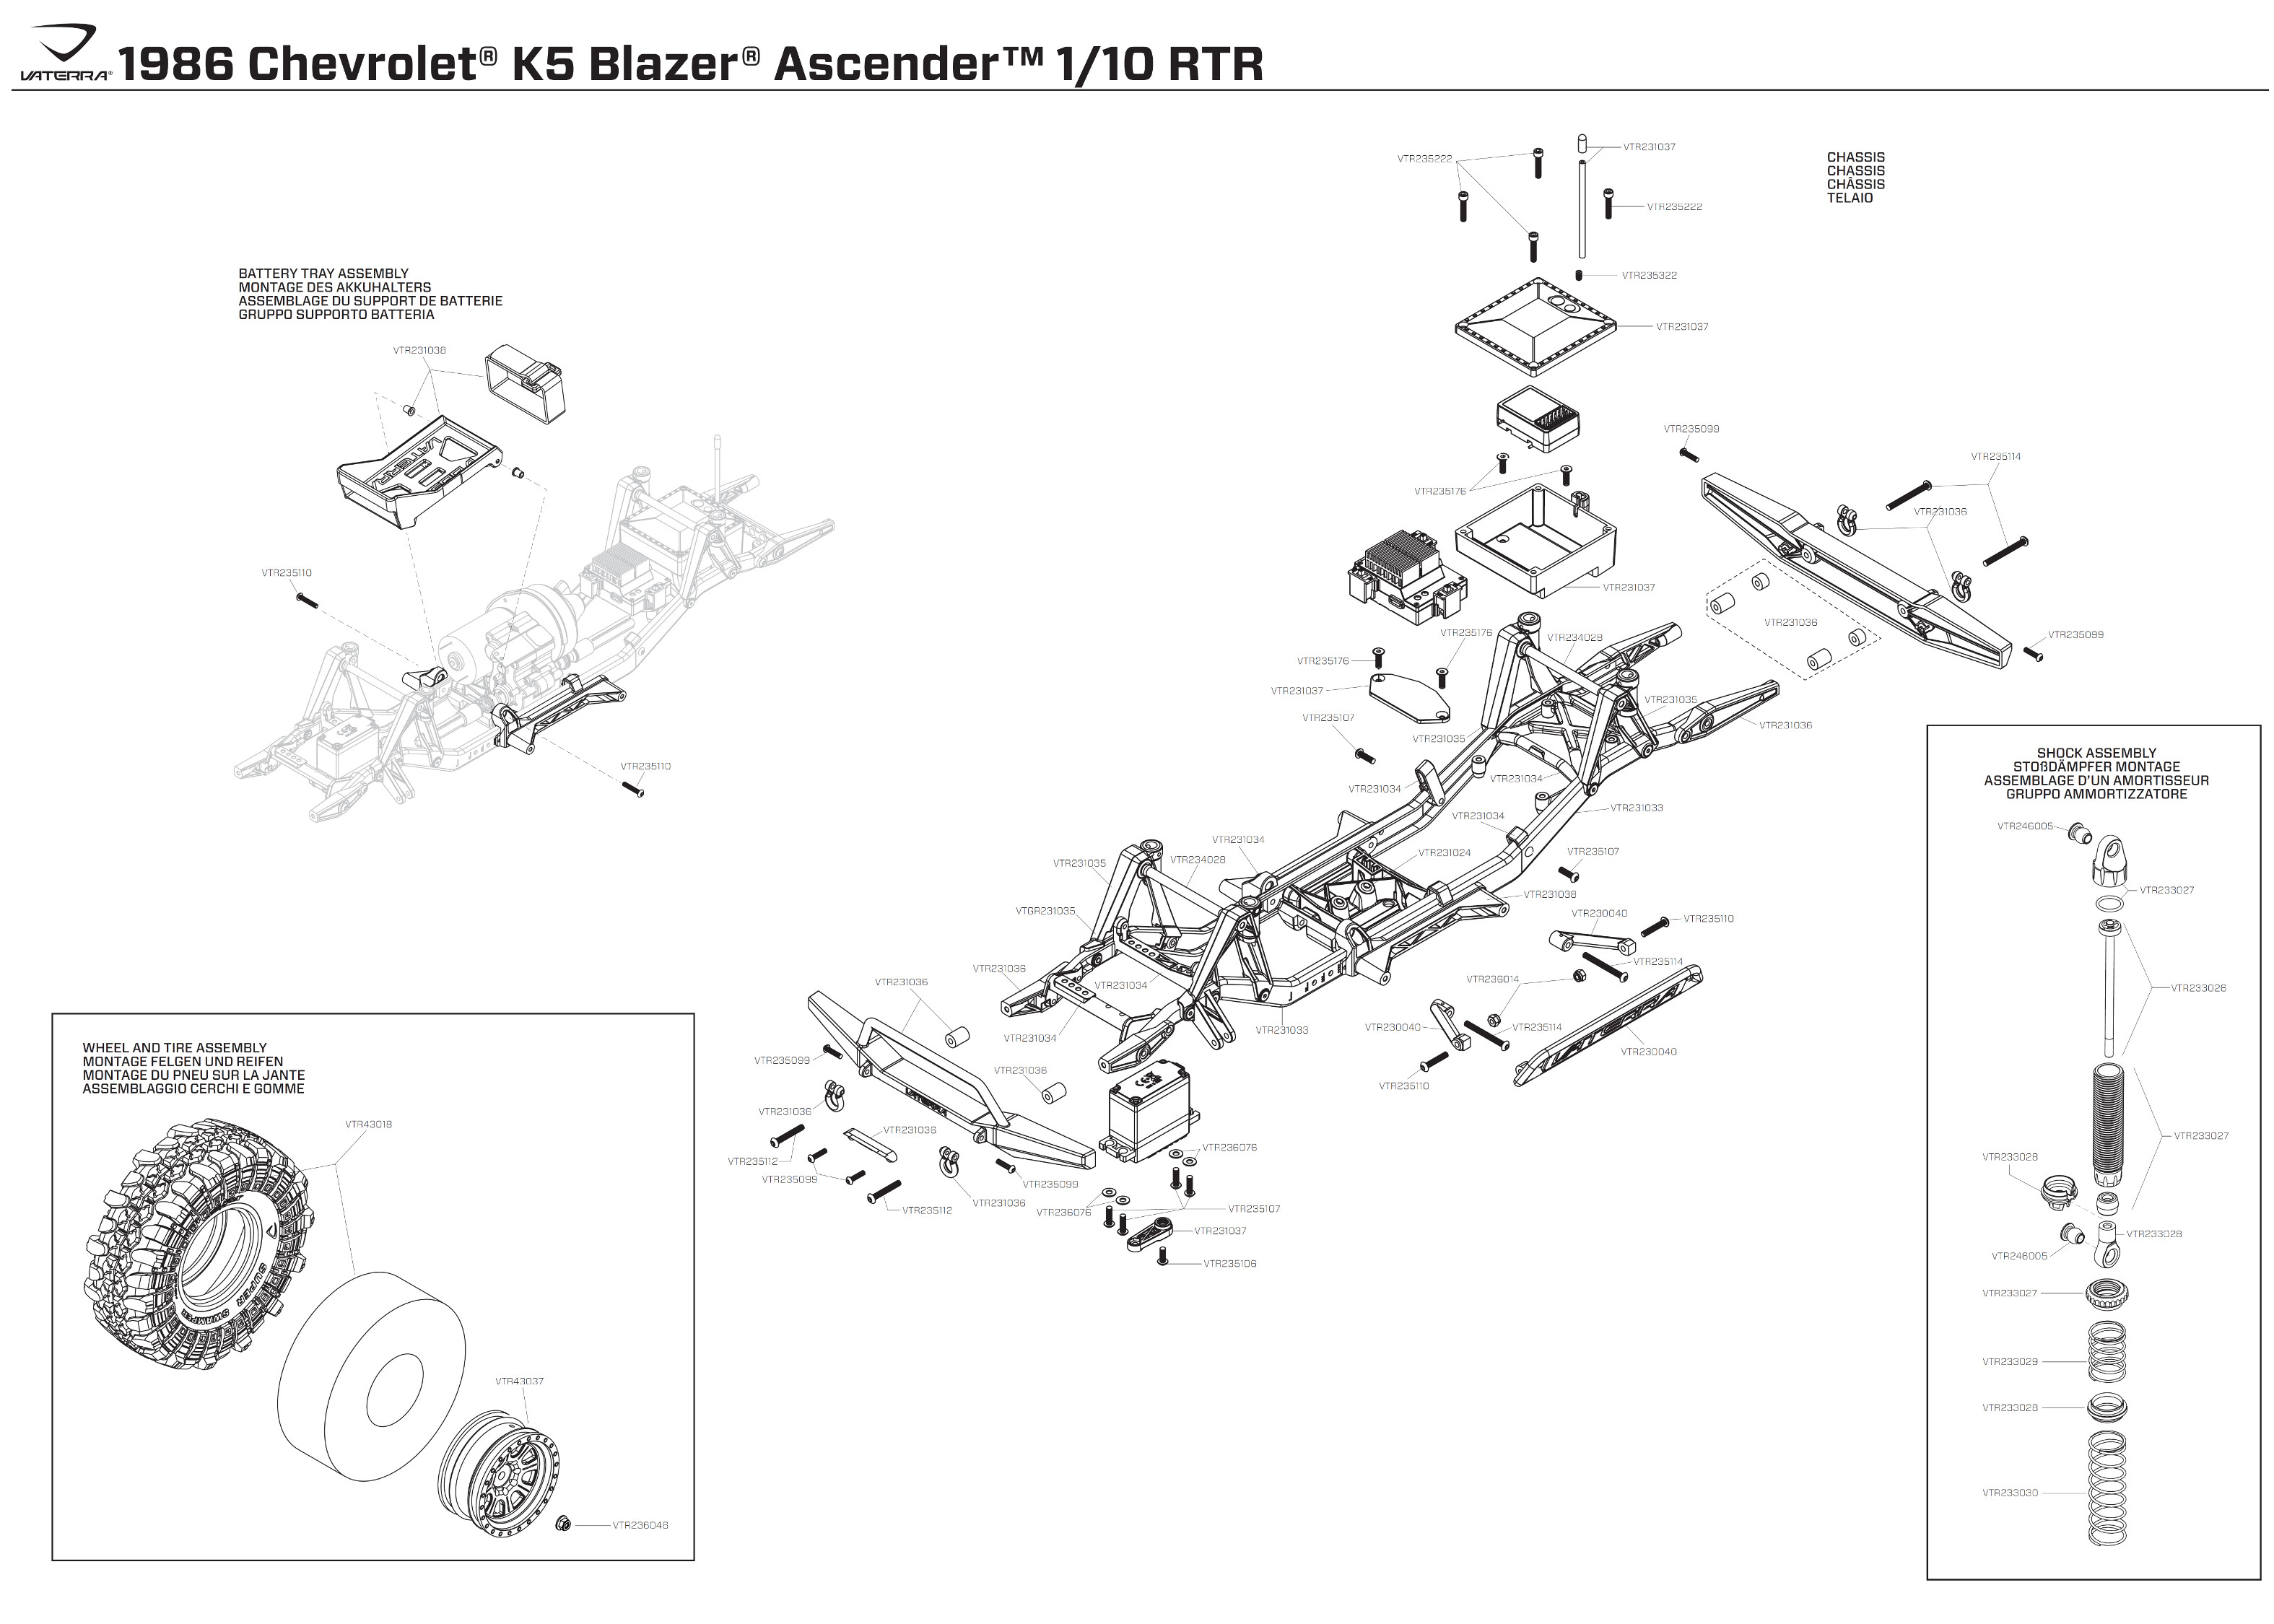 Exploded View Vaterra Chevrolet K 5 Blazer Ascender 110 4wd Rtr Diagram Of A Battery Chassis